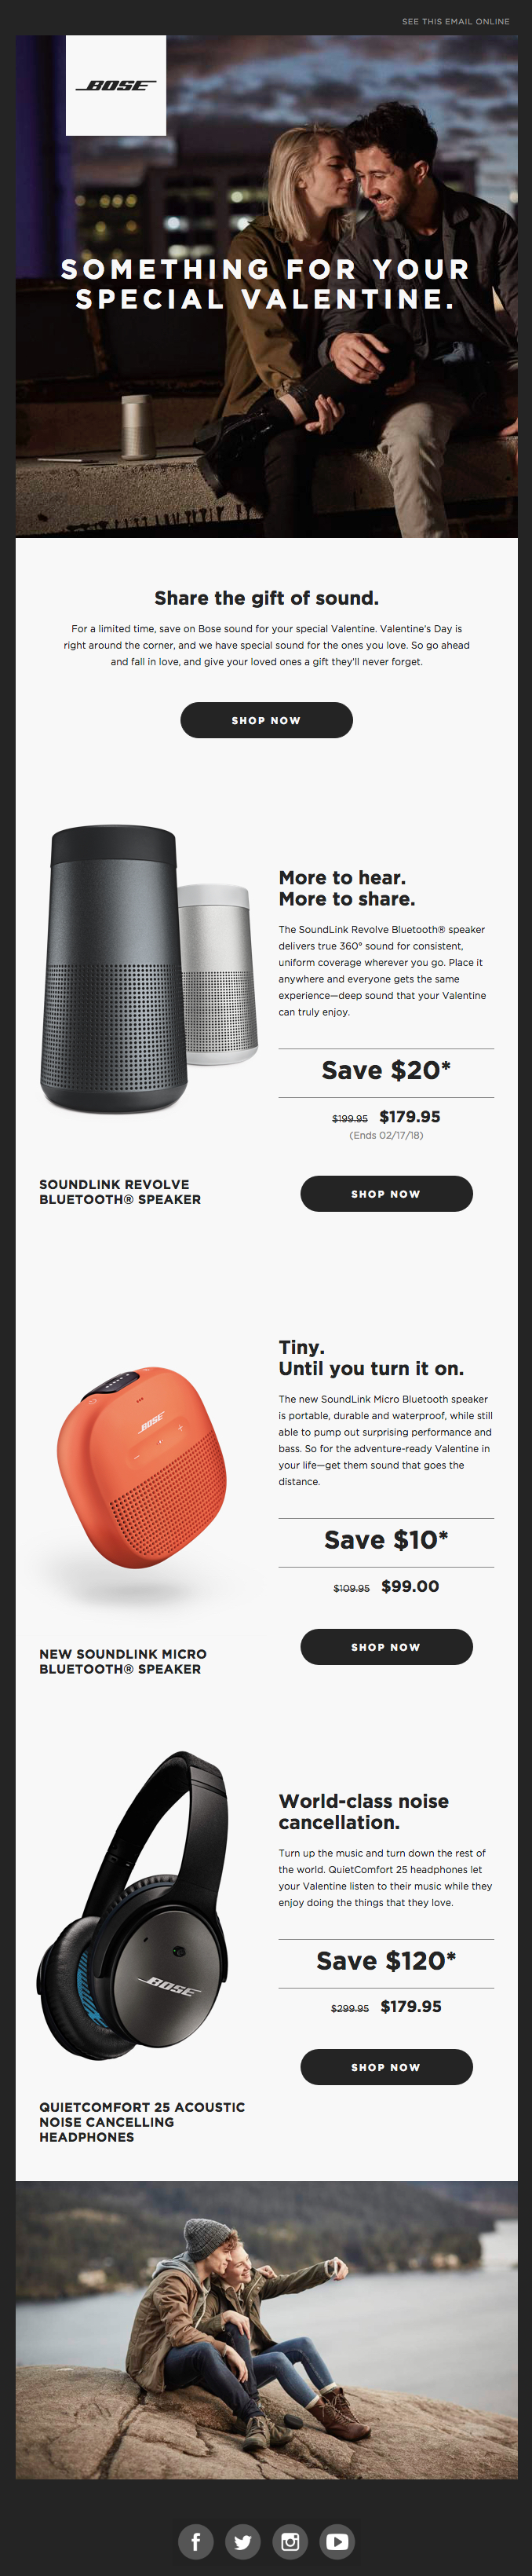 Bose's valentine's day email campaign